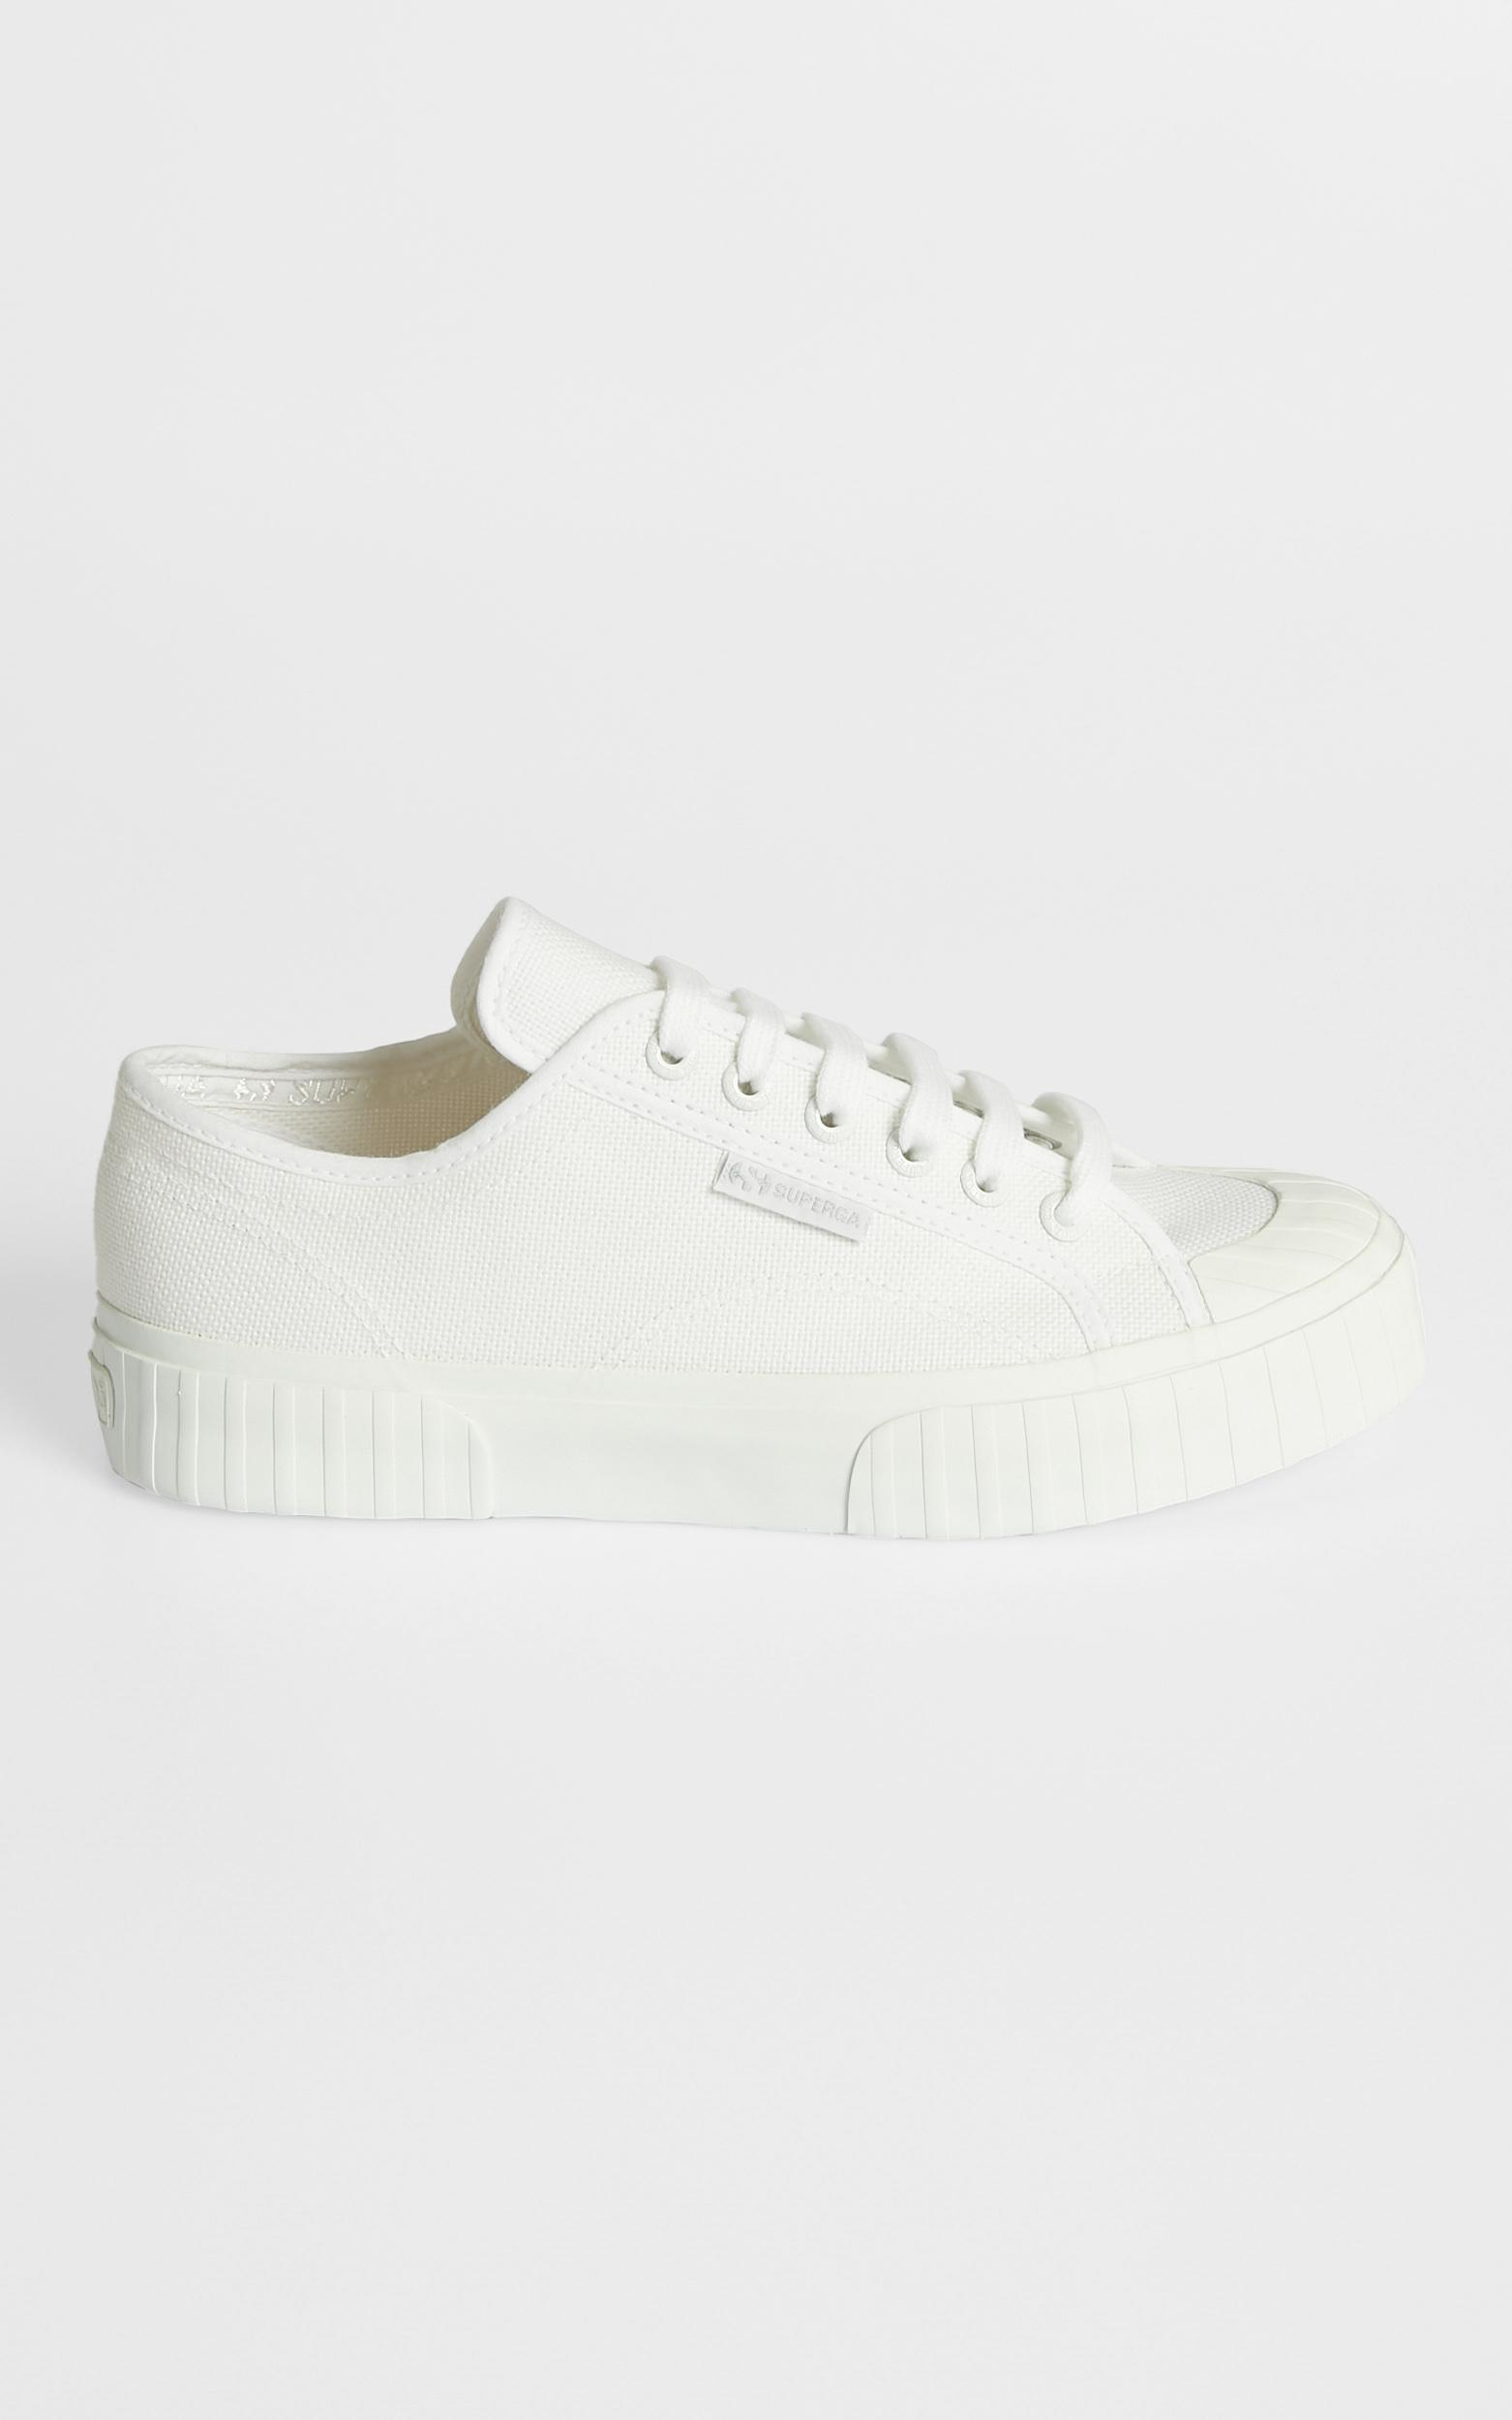 Superga - 2630 Cotu Sneakers in Total White - 5, White, hi-res image number null